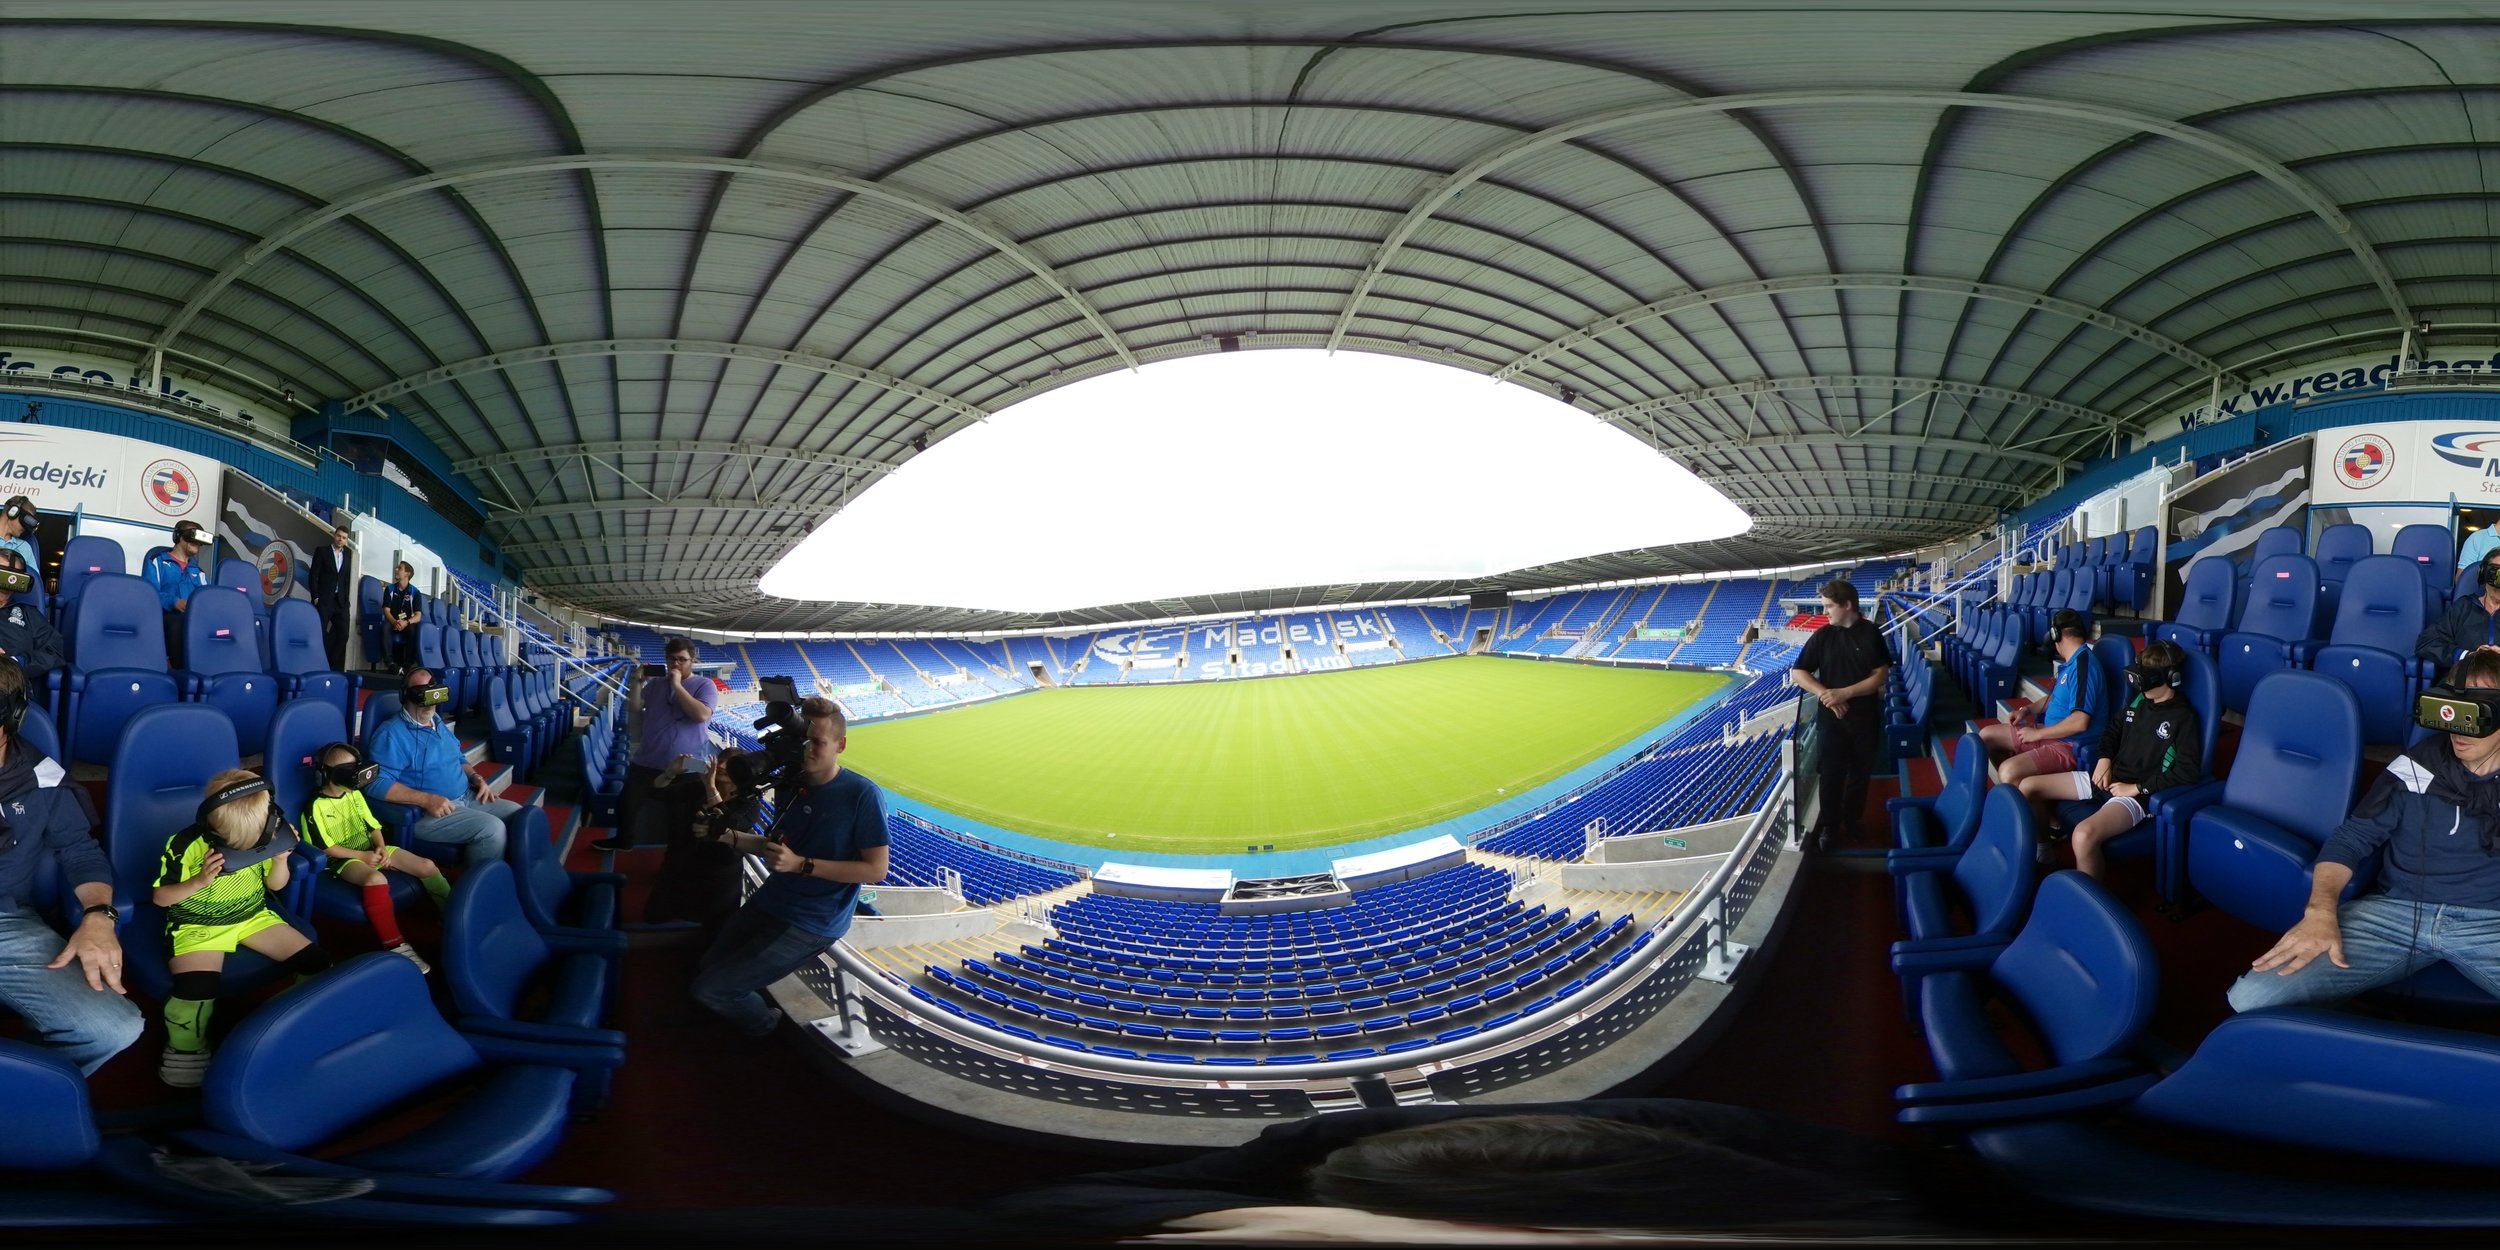 gate reality virtual reality augmented reality 360 video production house brooklyn new york london berkshire england soccer football club kit launch 2017 2018 madejski stadium